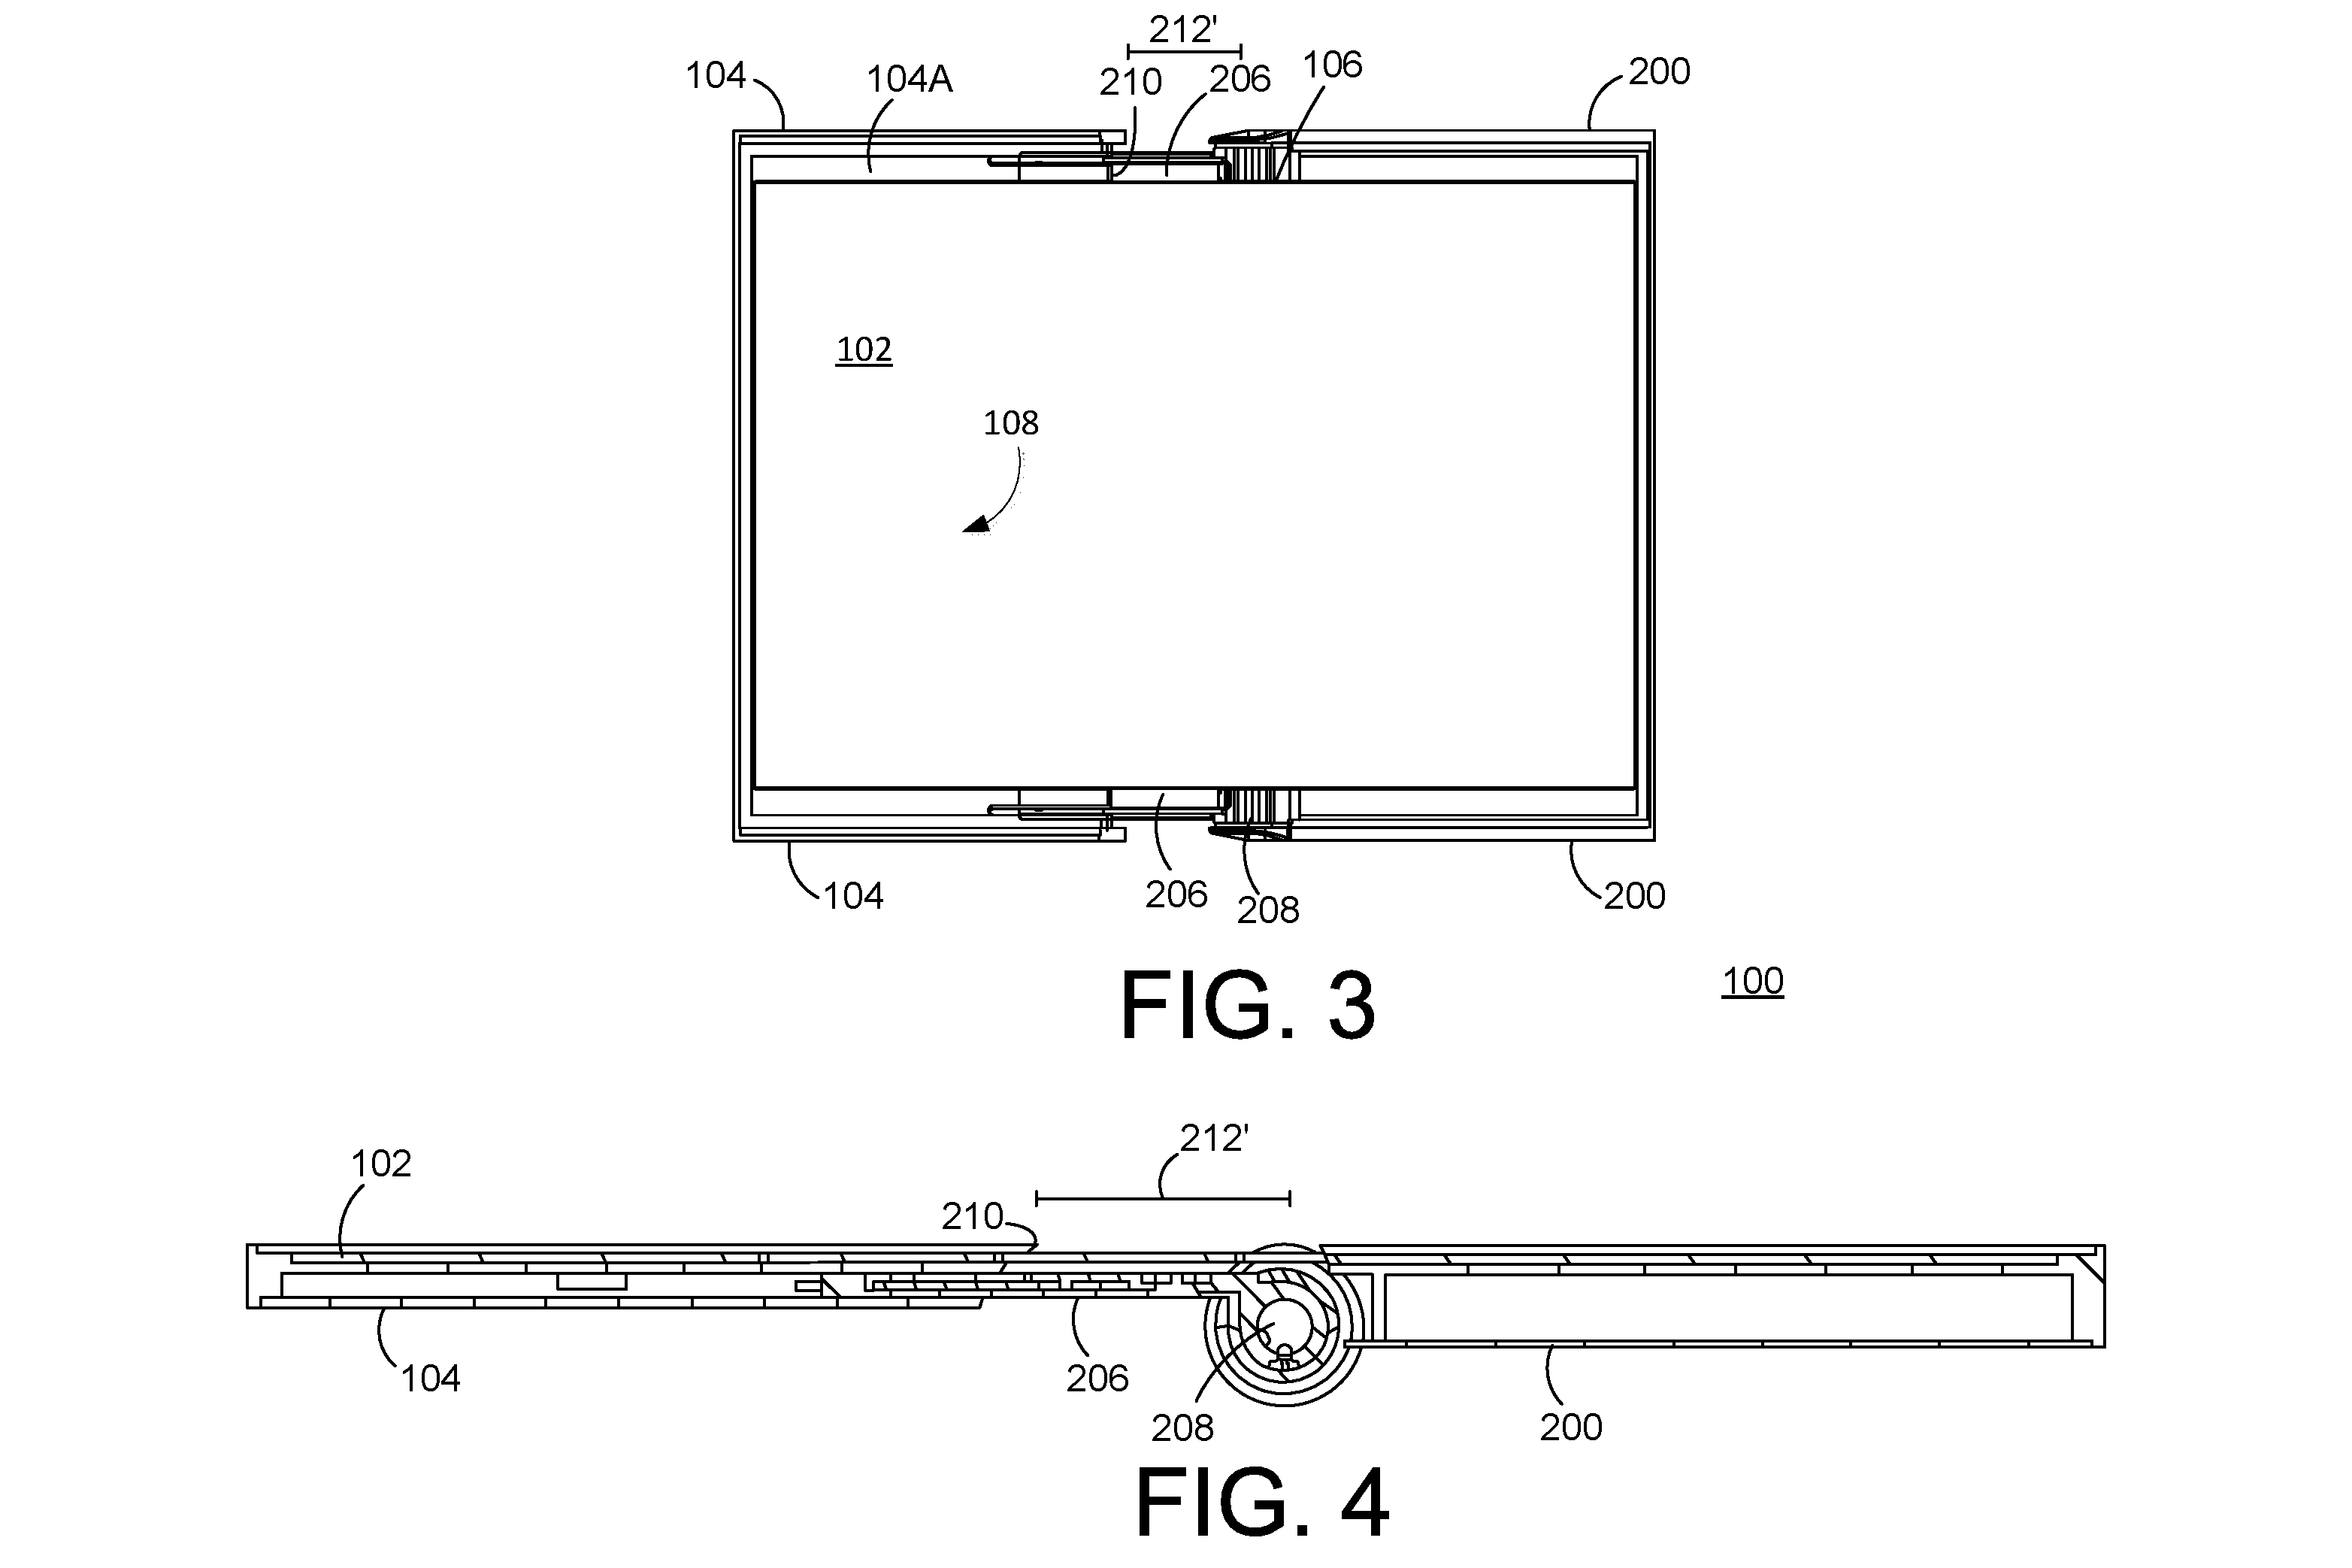 patent illustration for electronic device with flexible display